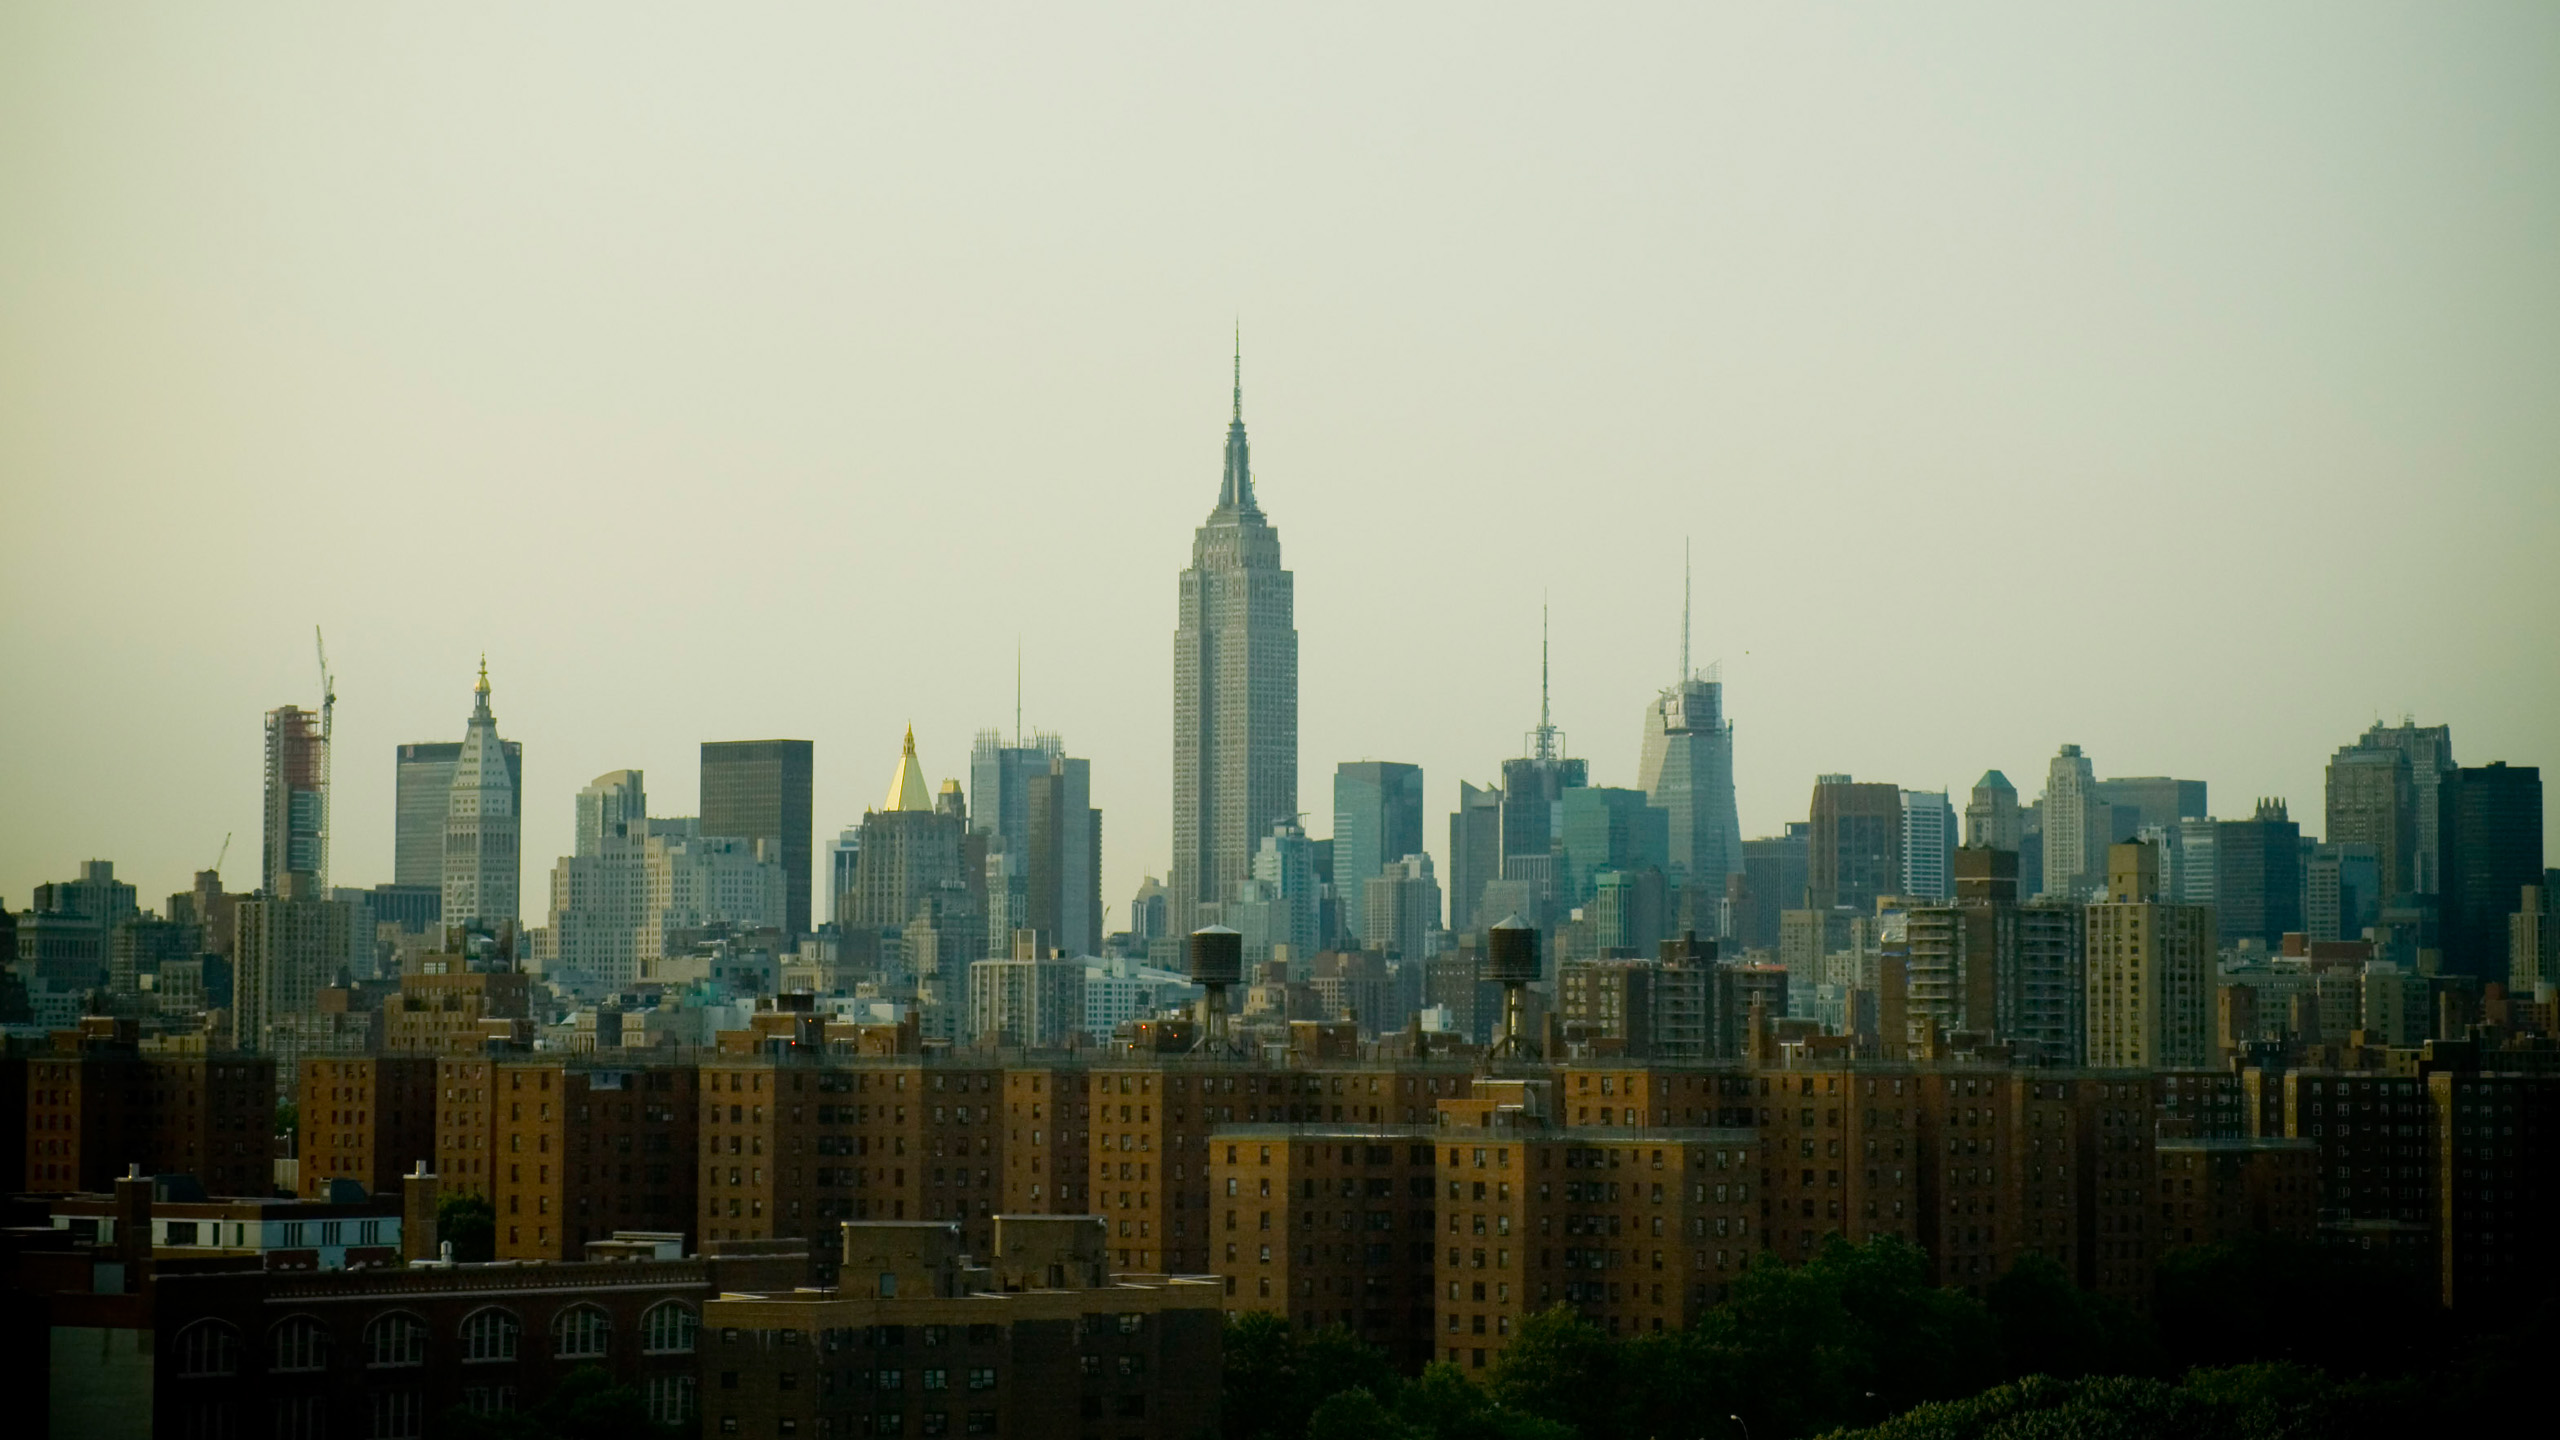 Empire State Building Wallpaper Background 51592